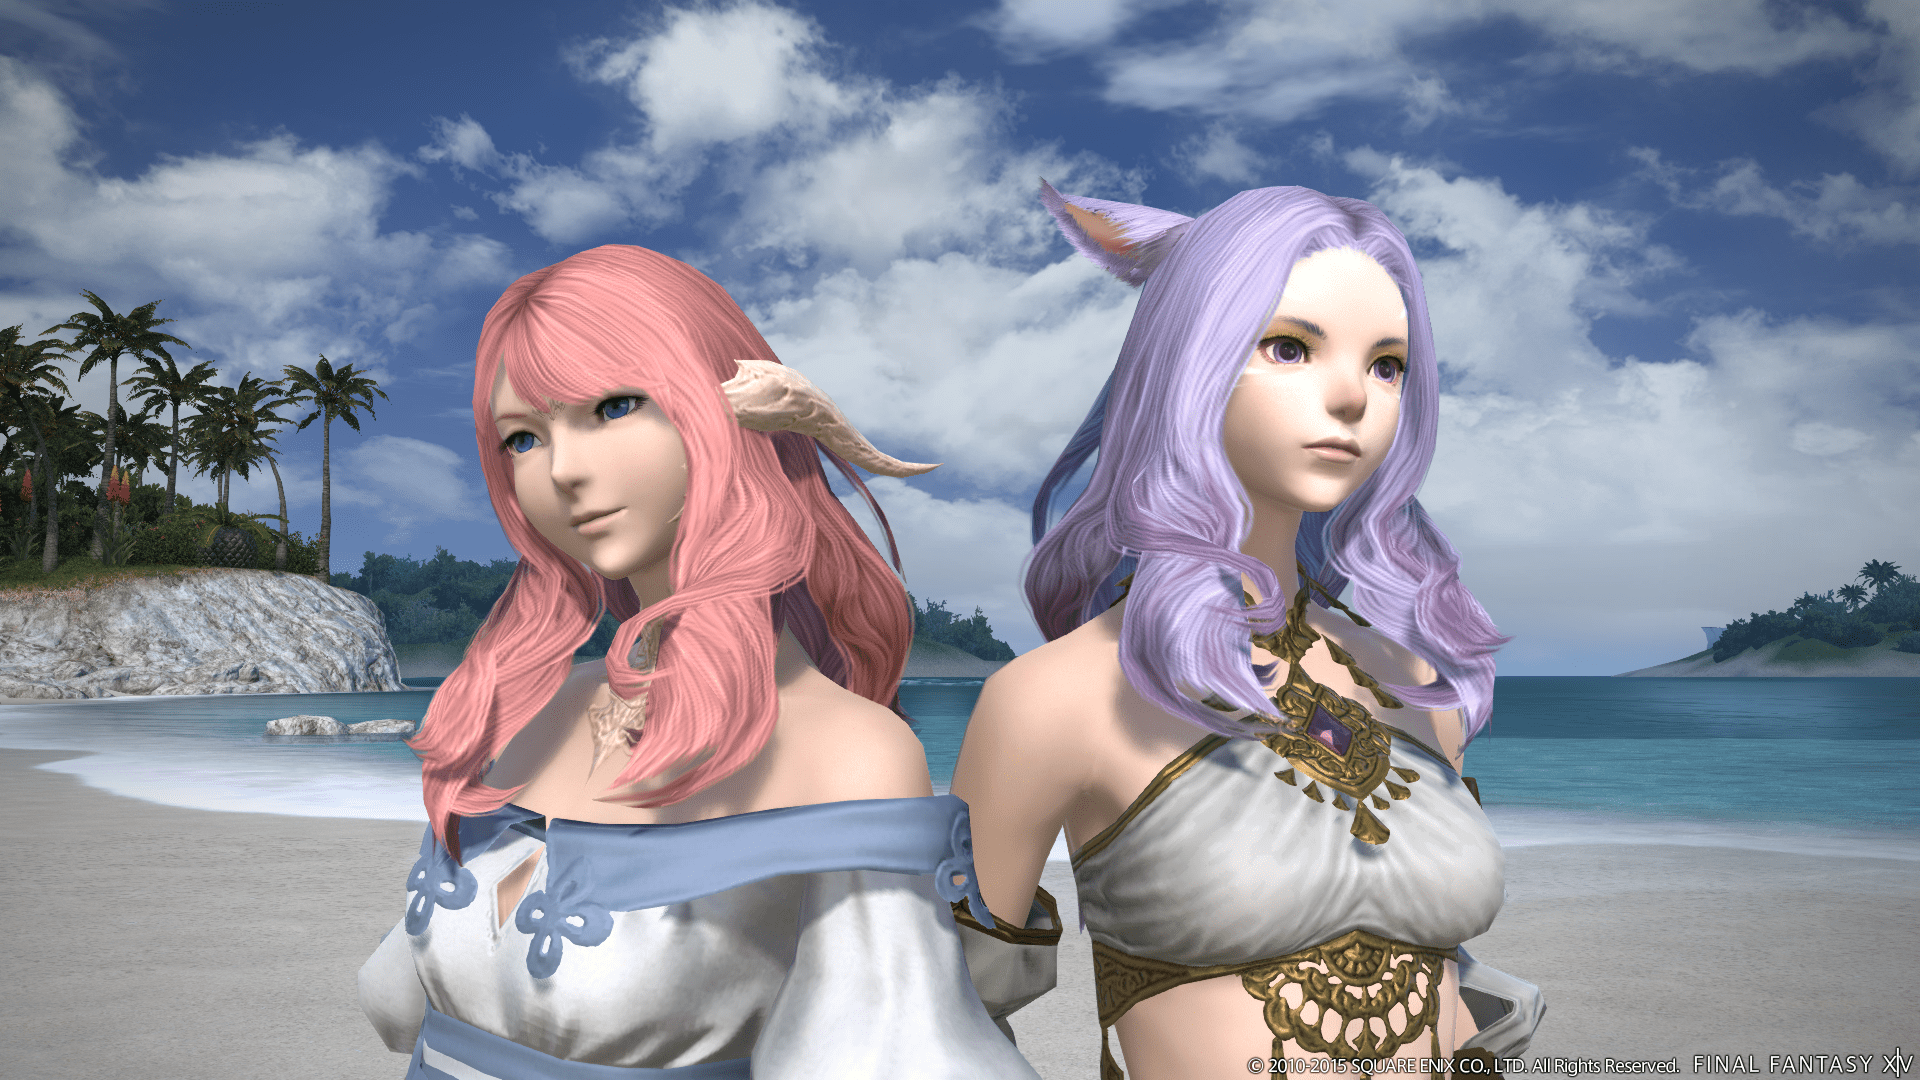 Final Fantasy XIV Gets Even More Beautiful With New